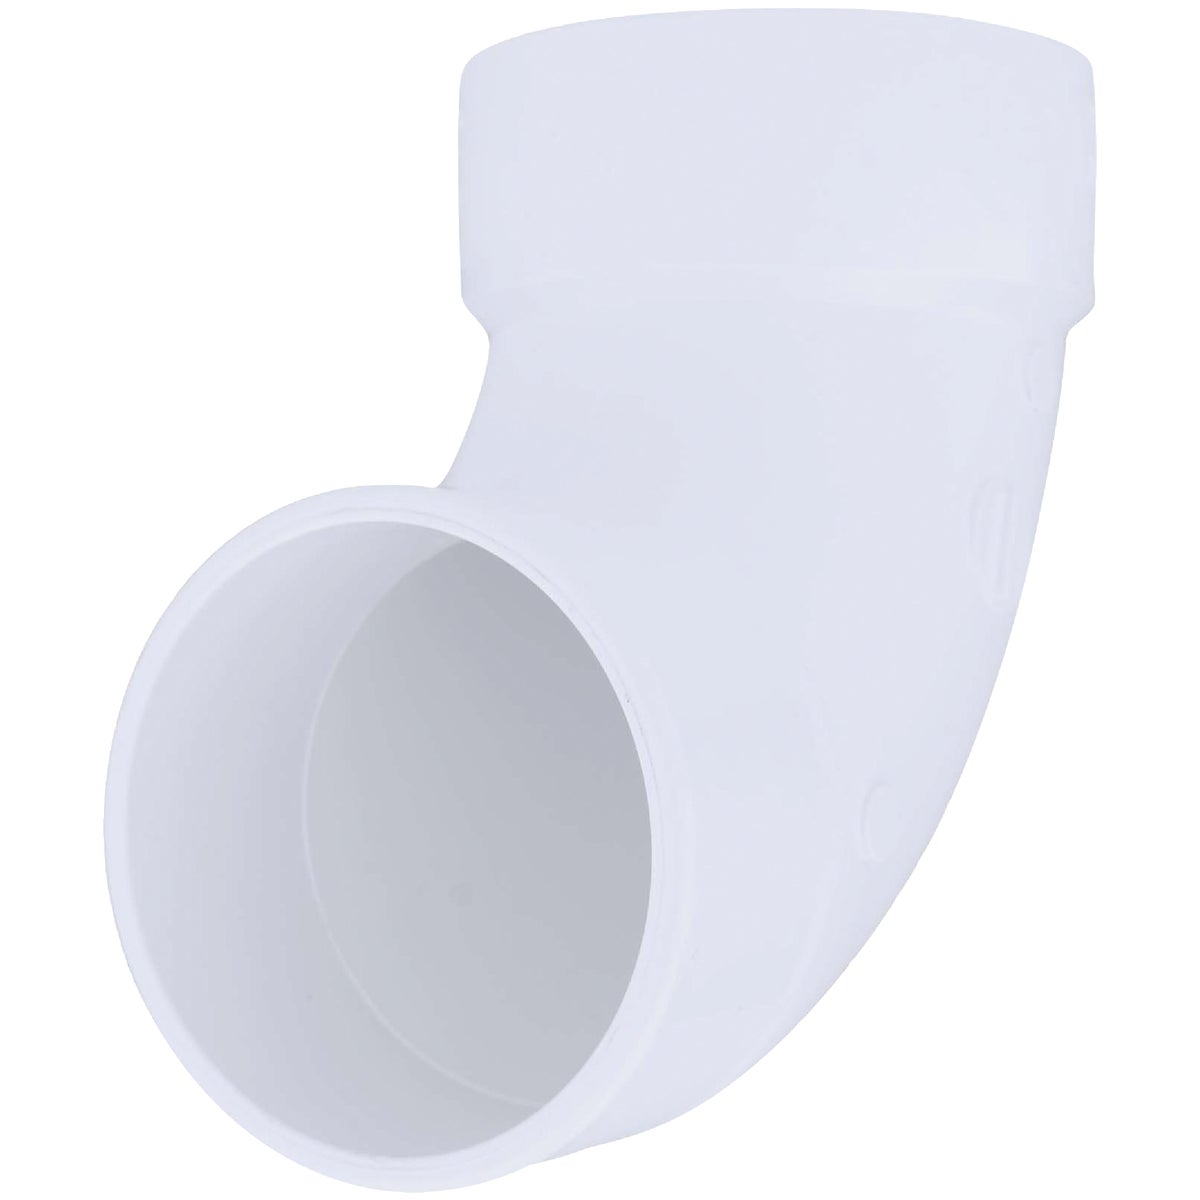 "4""90D DWV SANI STR ELBOW - 72946 by Genova Inc  Pvc Dwv"